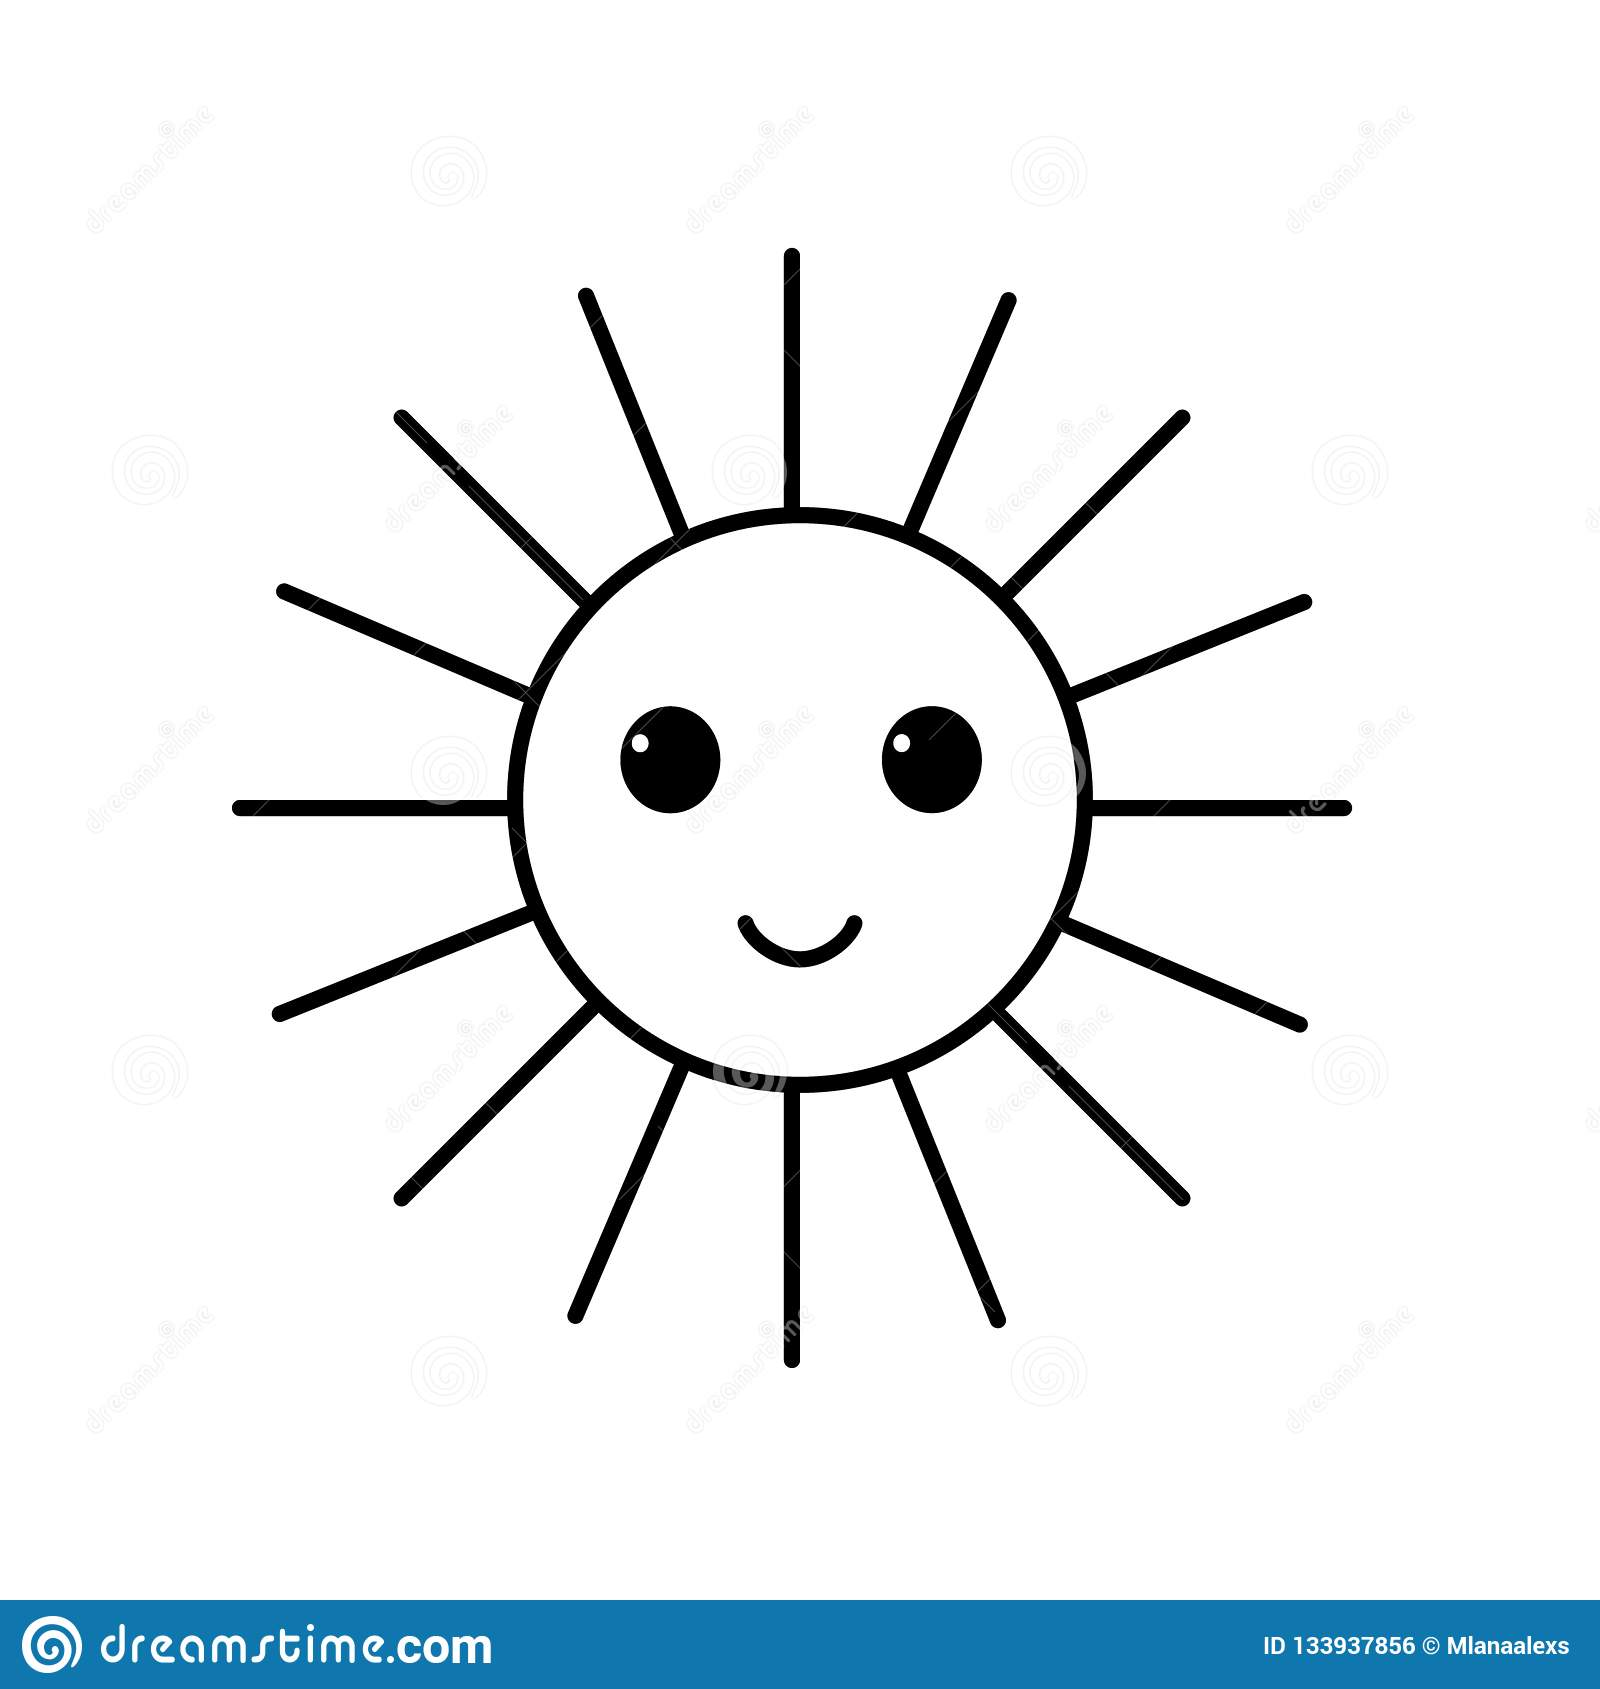 Smile Sun Symbol Black And White Icon Stock Vector Illustration Of